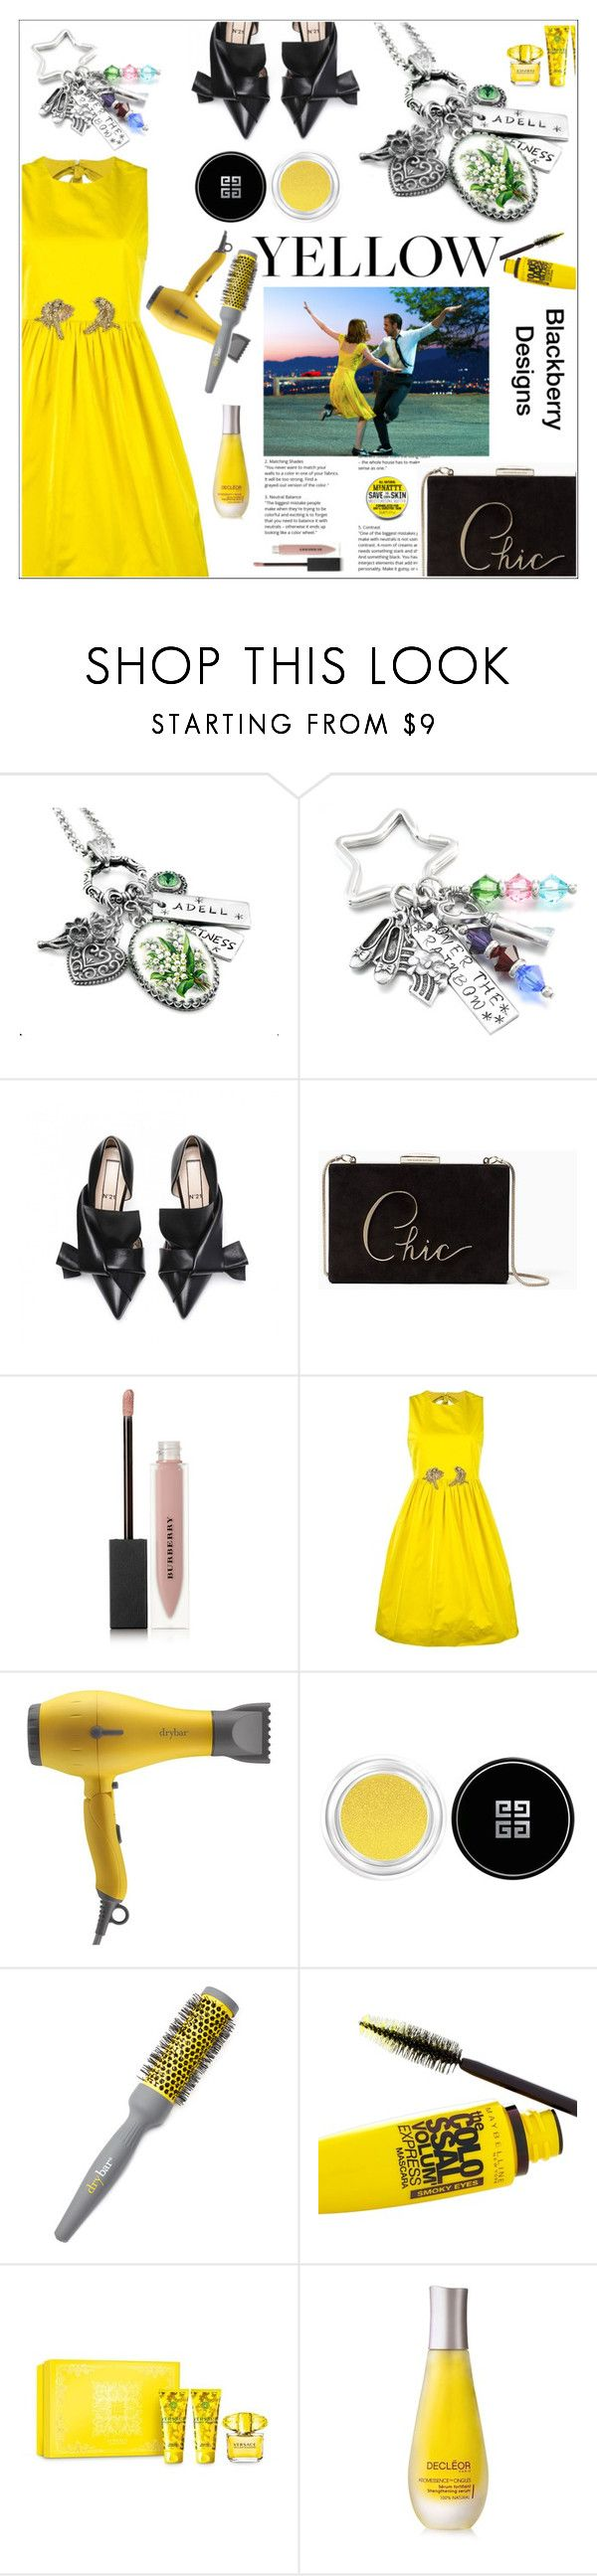 """""""Yellow Dress with Blackberry Designs"""" by shambala-379 ❤ liked on Polyvore featuring Kate Spade, Burberry, N°21, Drybar, Givenchy, Maybelline, Versace, Decléor and Mr Natty"""